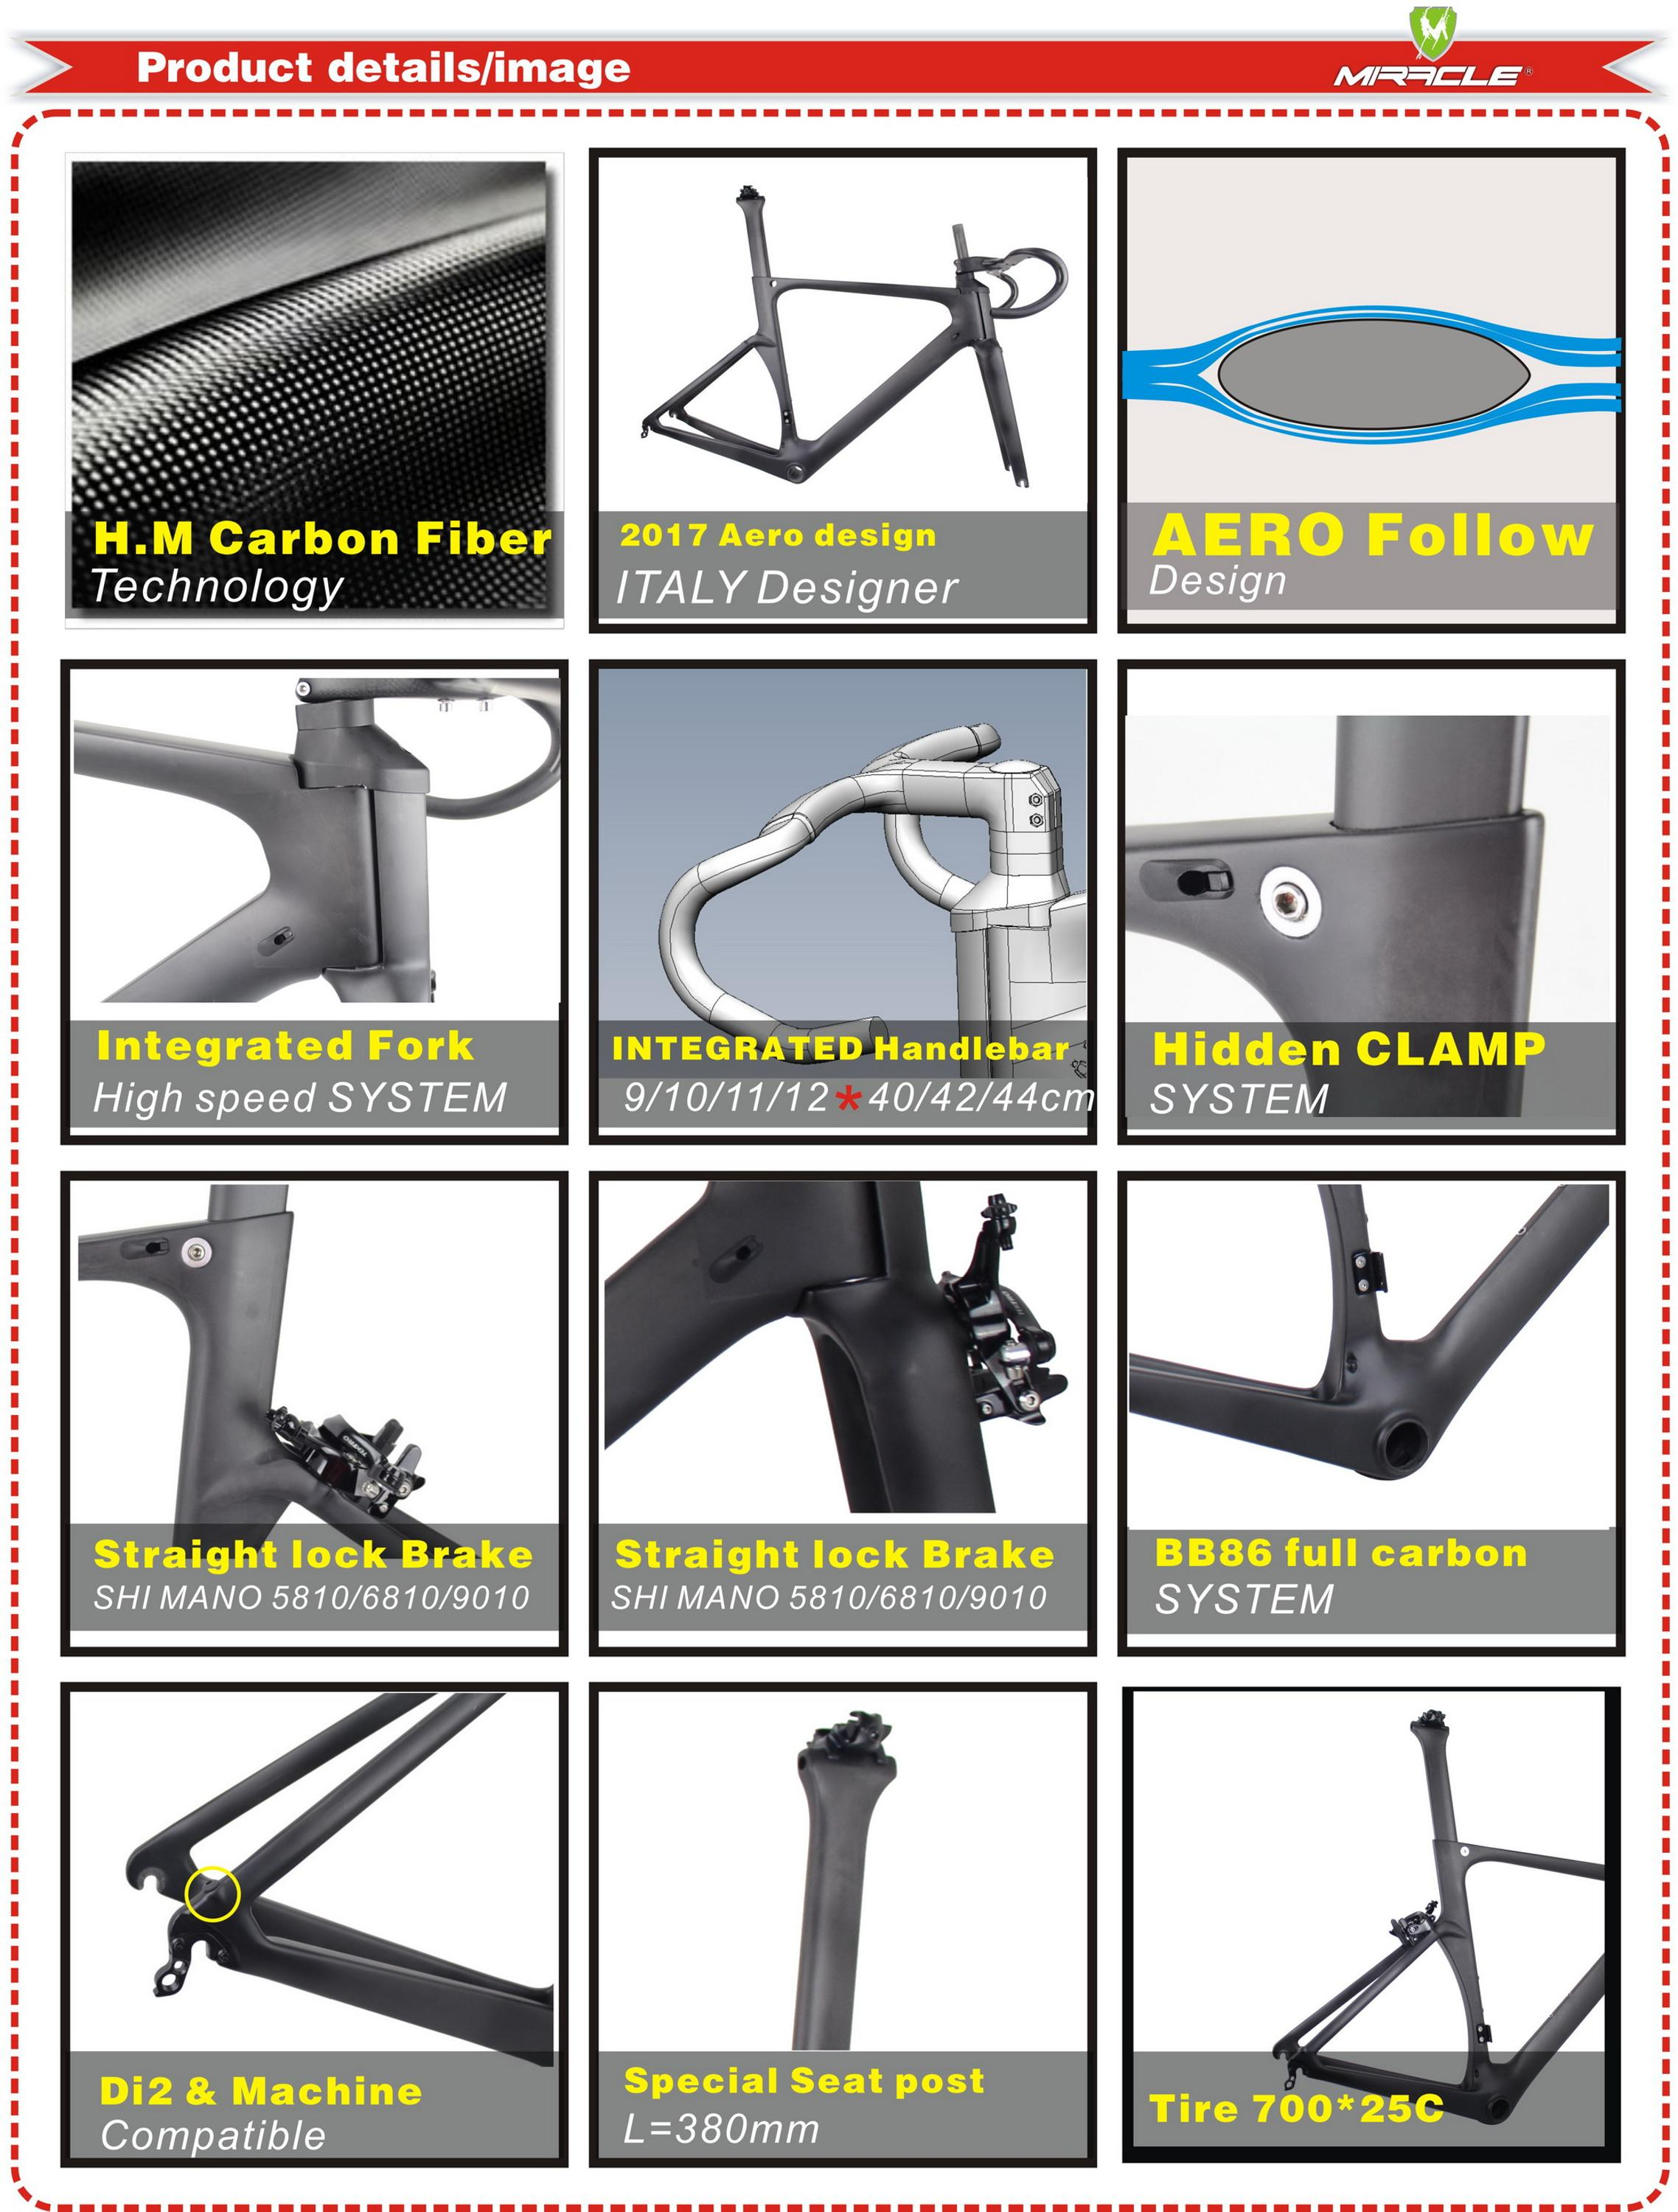 AERO Road Bike Frame,T700 Full Carbon fiber Bicycle Frame,Warranty 2 Years Chinese Carbon Frame